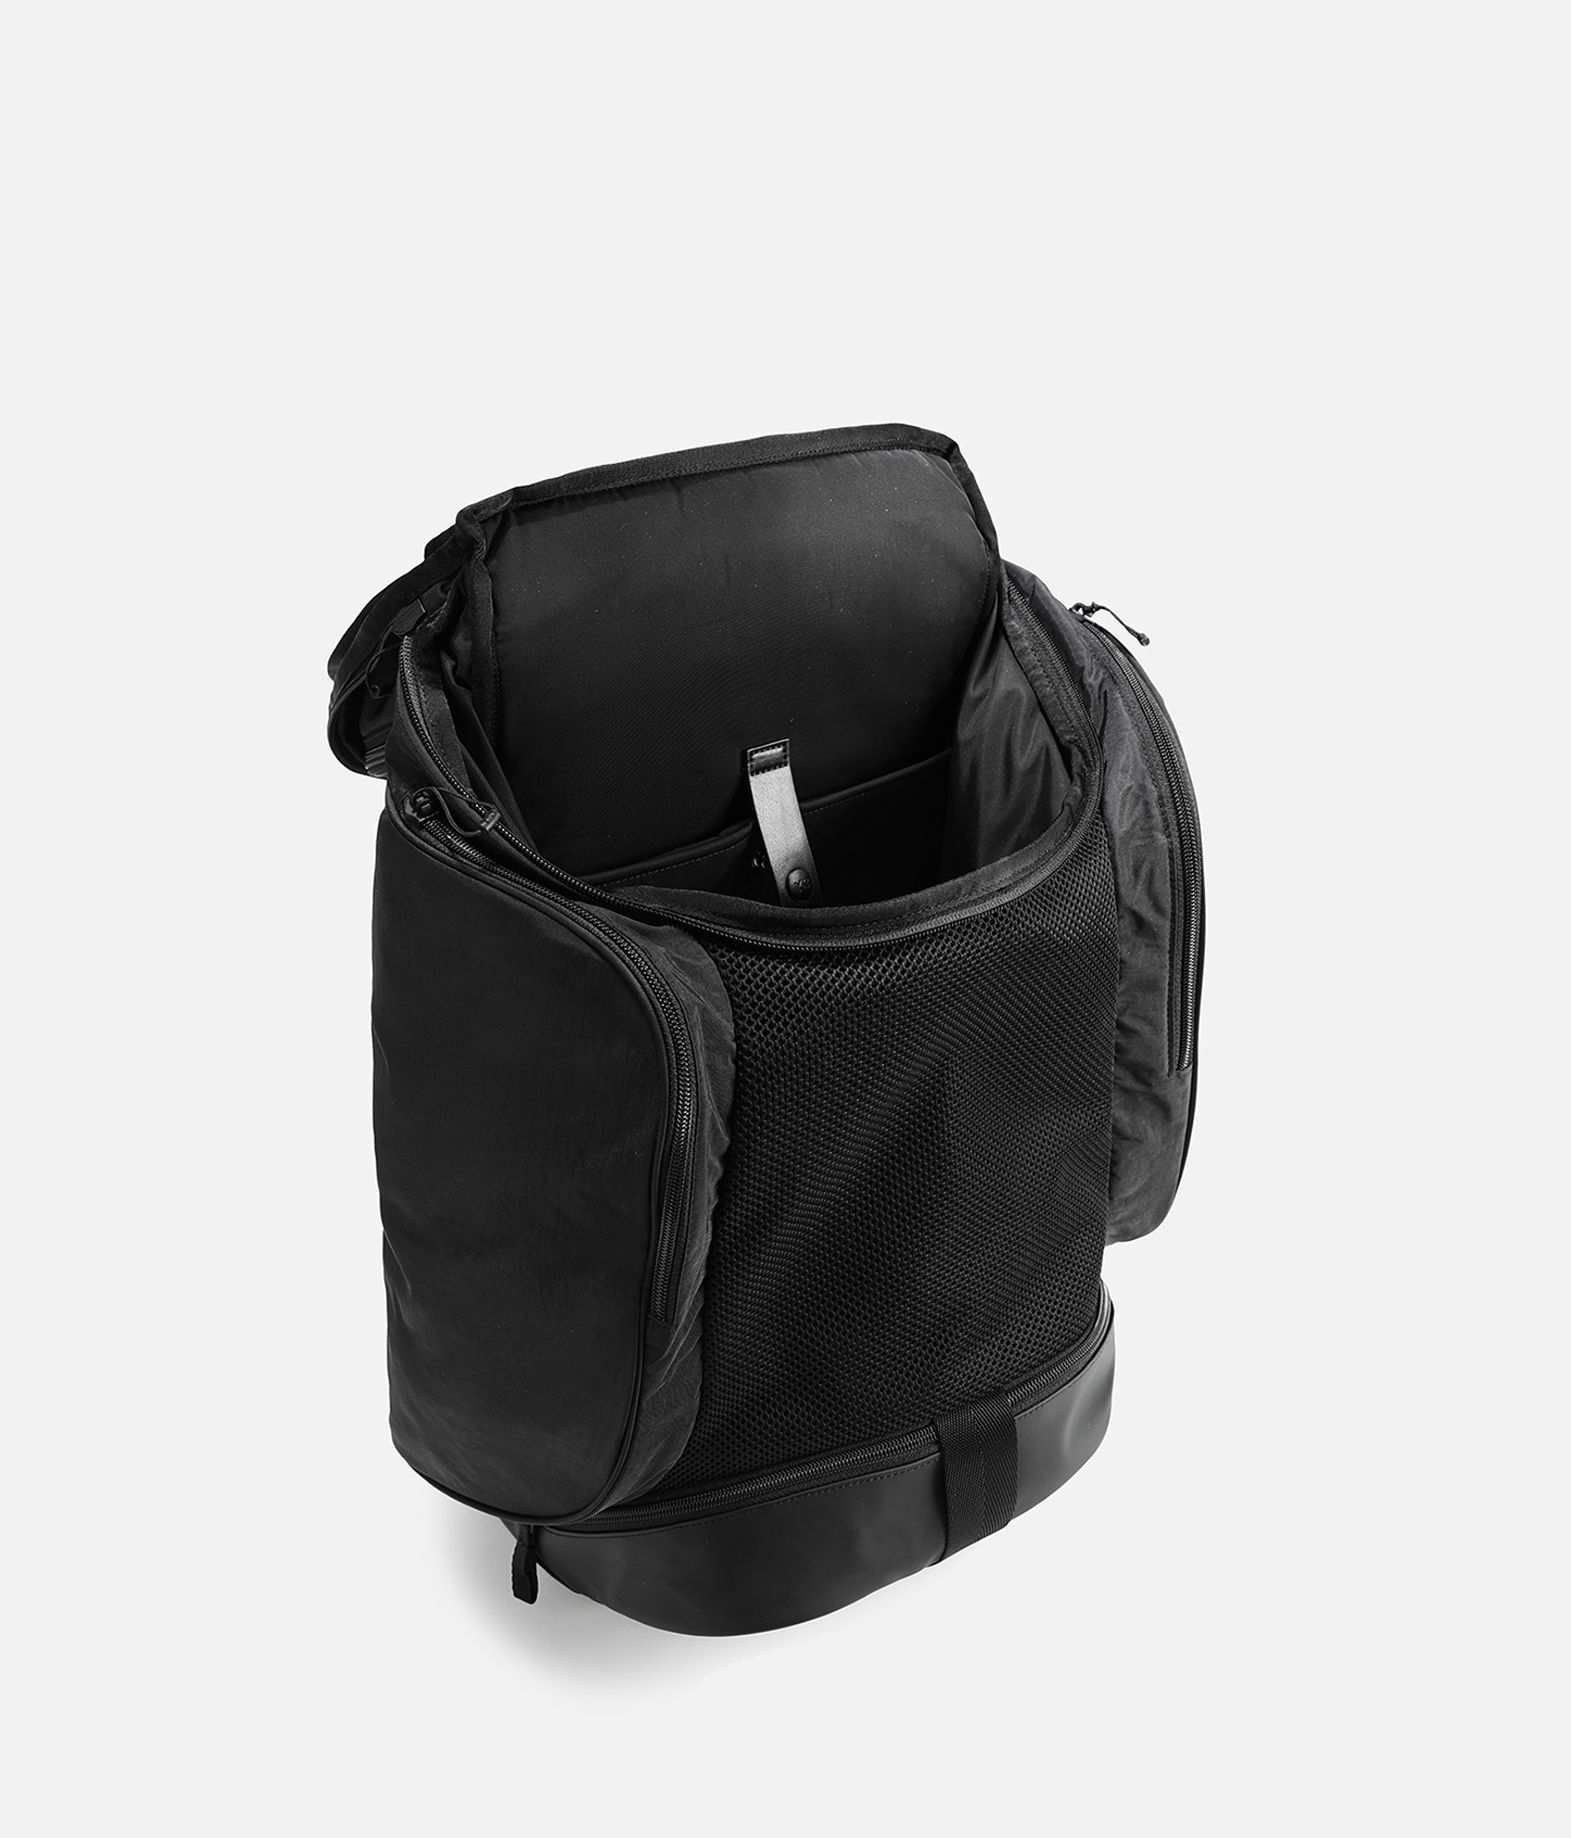 Y-3 Y-3 Travel Backpack リュックサック E a